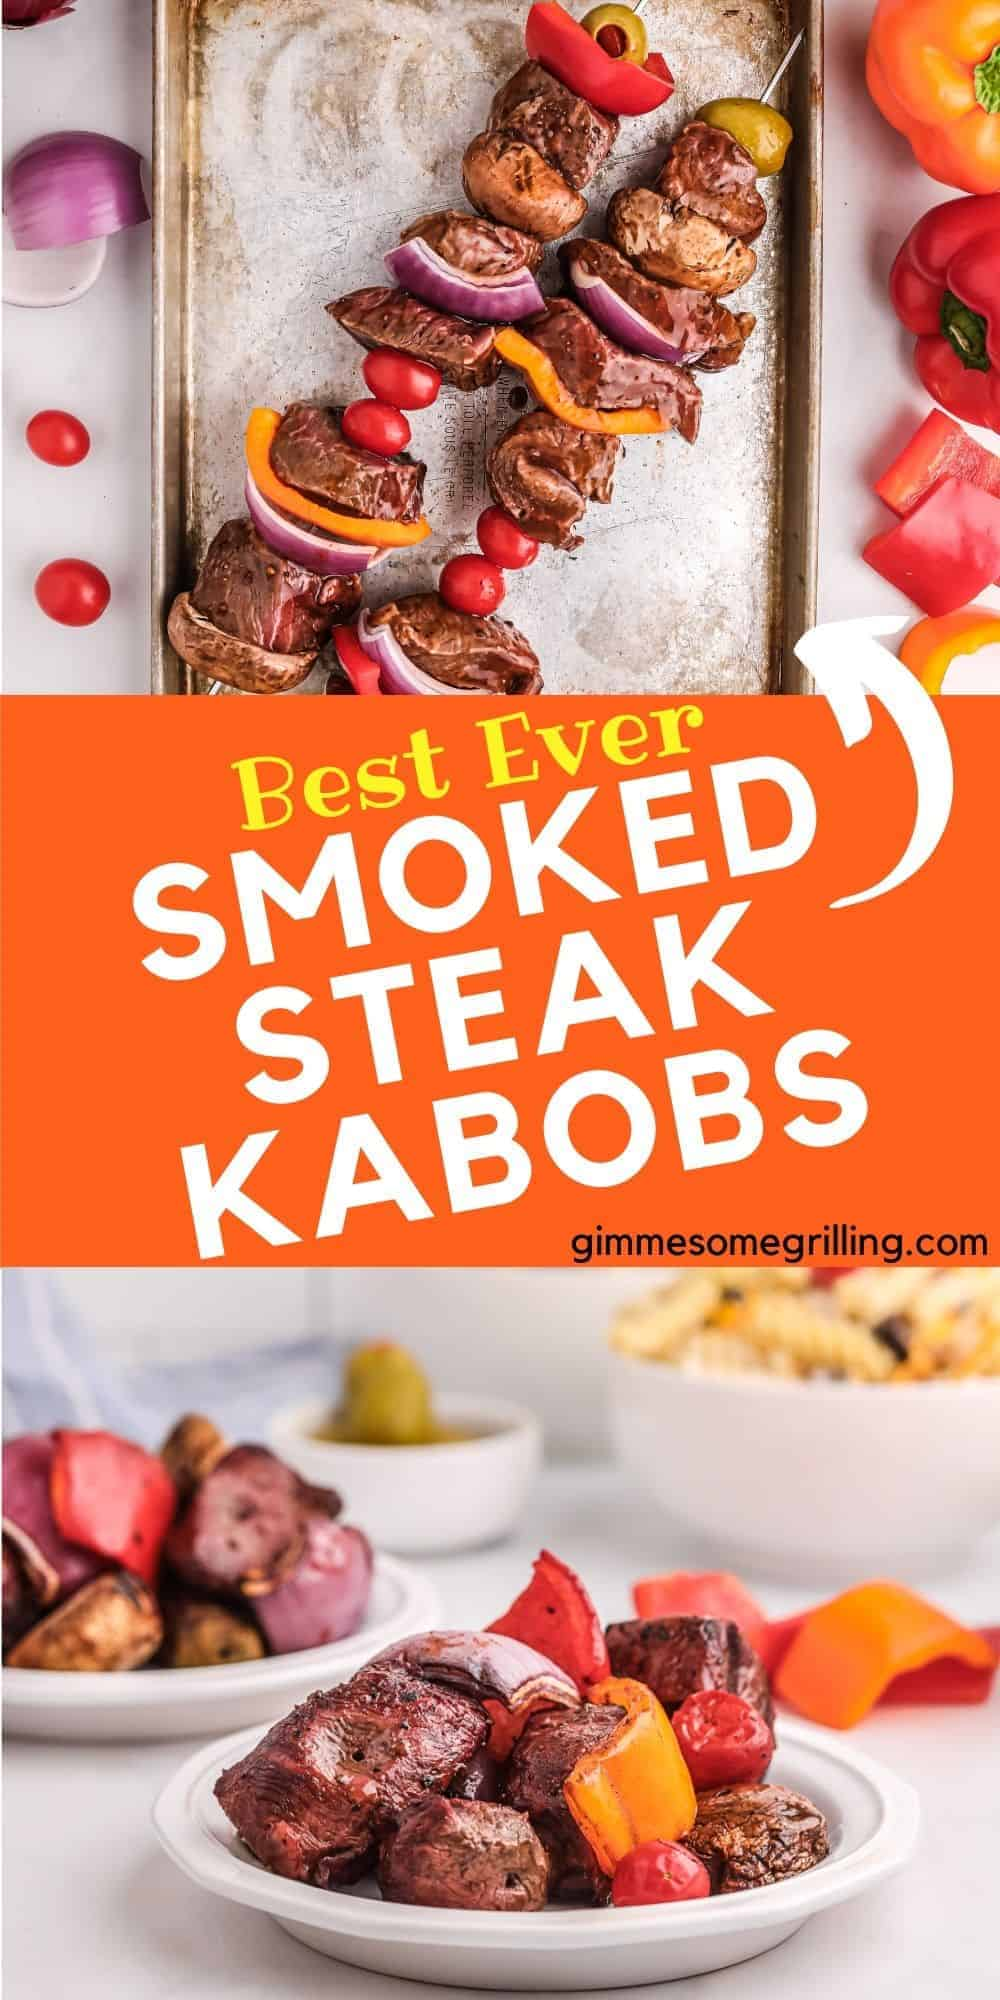 Marinated pieces of Sirloin Steak, red onion, cherry tomatoes, Spanish Olives, Portabella Mushrooms and bell peppers make these Smoked Steak Kabobs amazing! An easy and quick dinner recipe on your smoker. They are perfect for an easy dinner for your family or a great option for entertaining family and friends. via @gimmesomegrilling